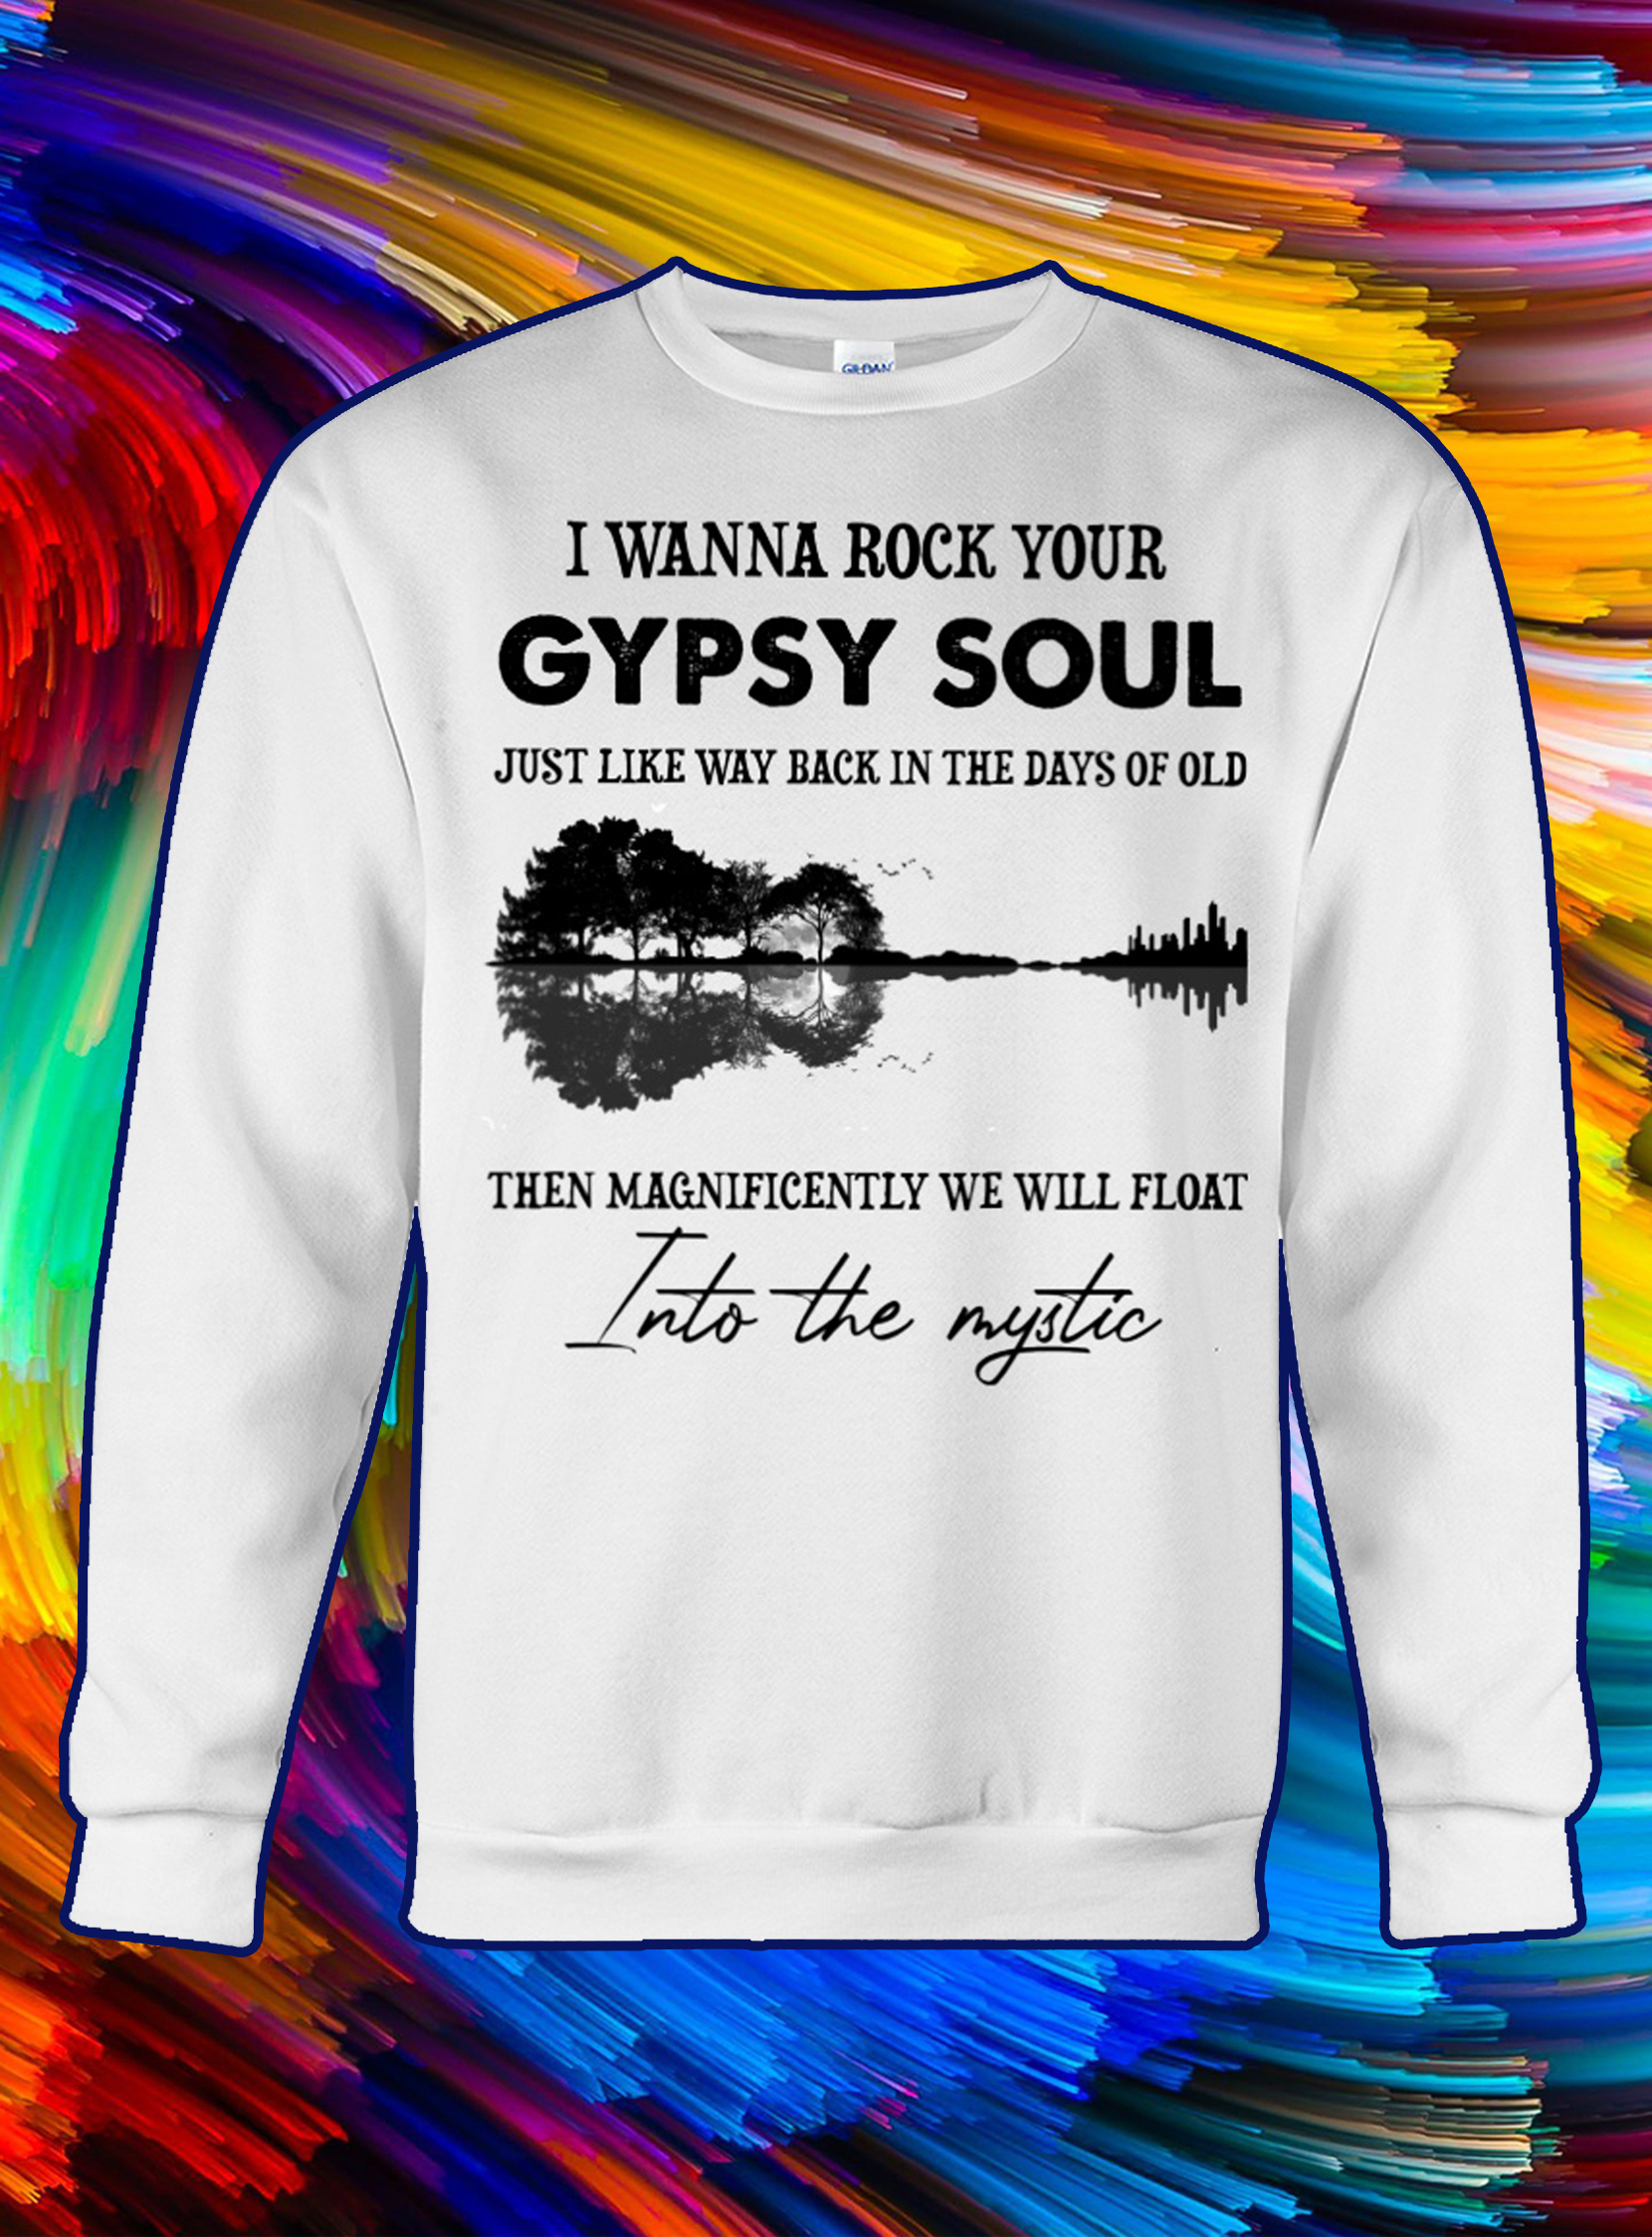 Guitar reflection I wanna rock your gypsy soul just like way back in the days of old sweatshirt